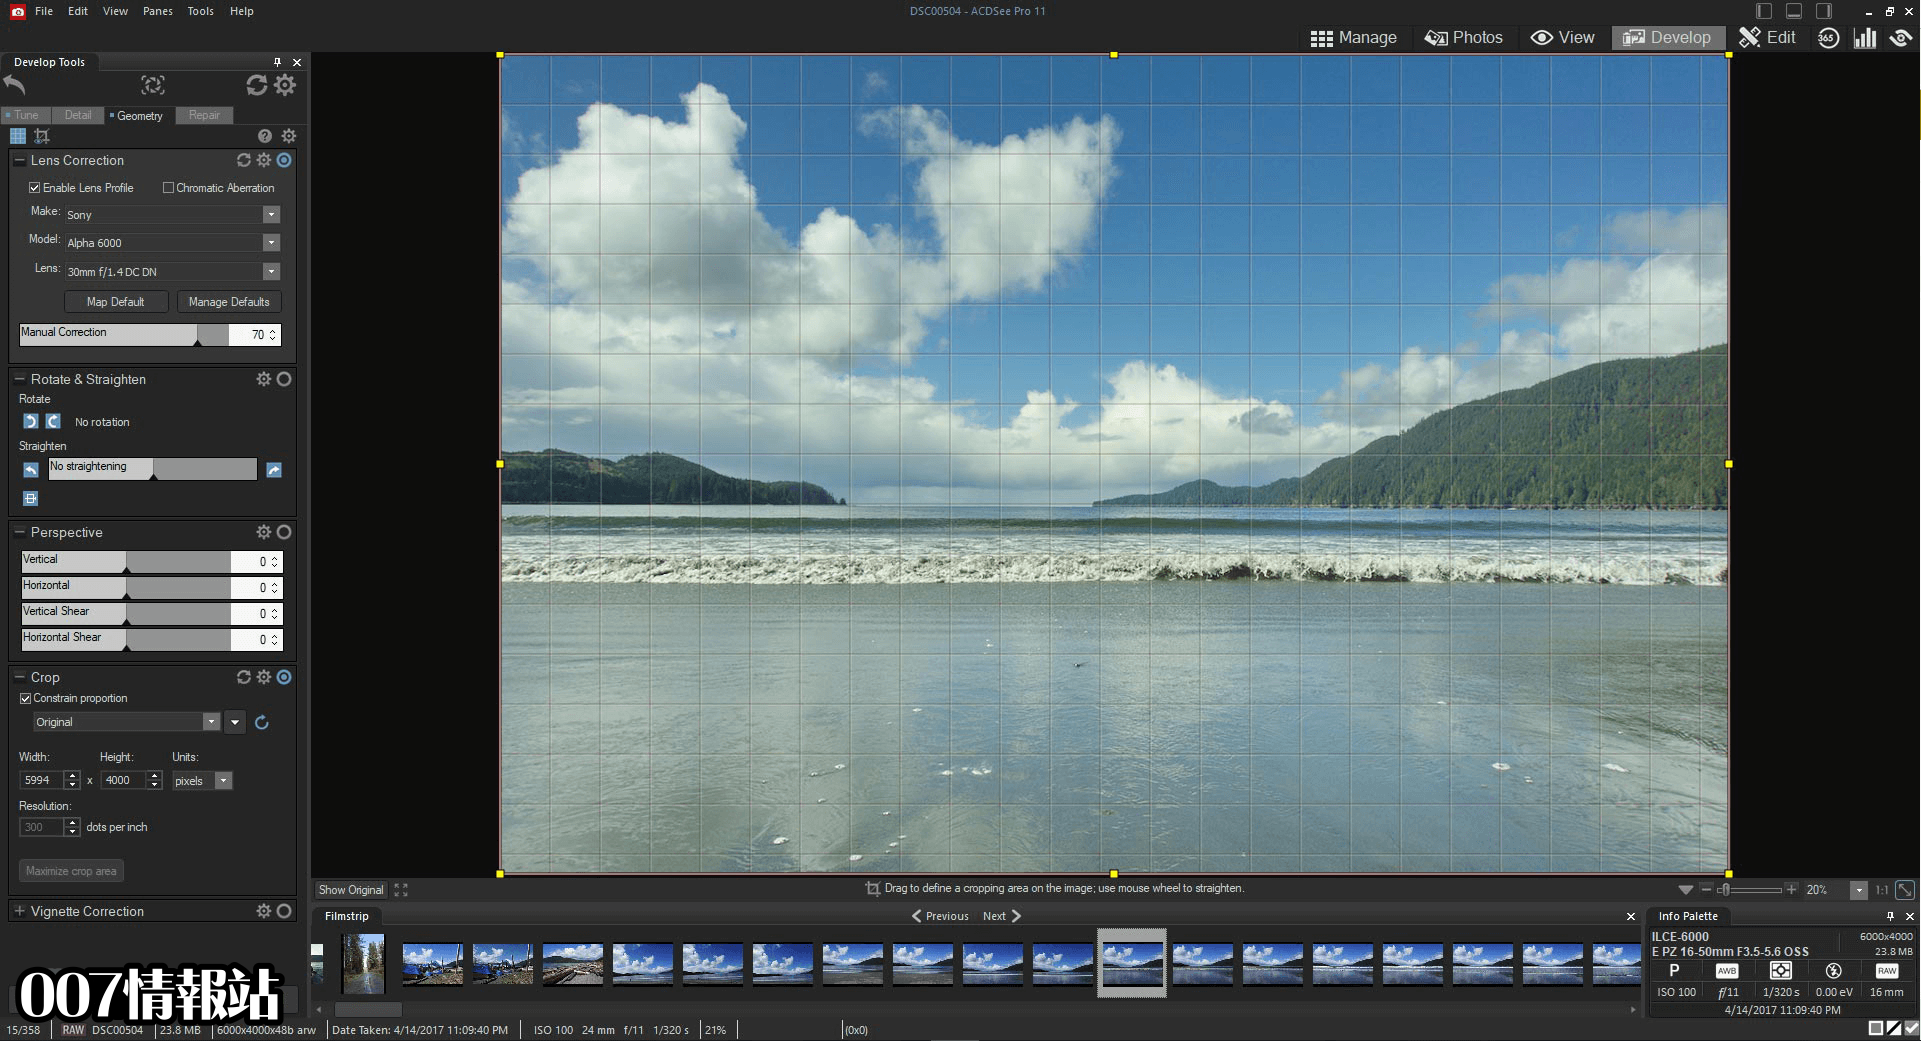 ACDSee Photo Studio Professional (32-bit) Screenshot 3